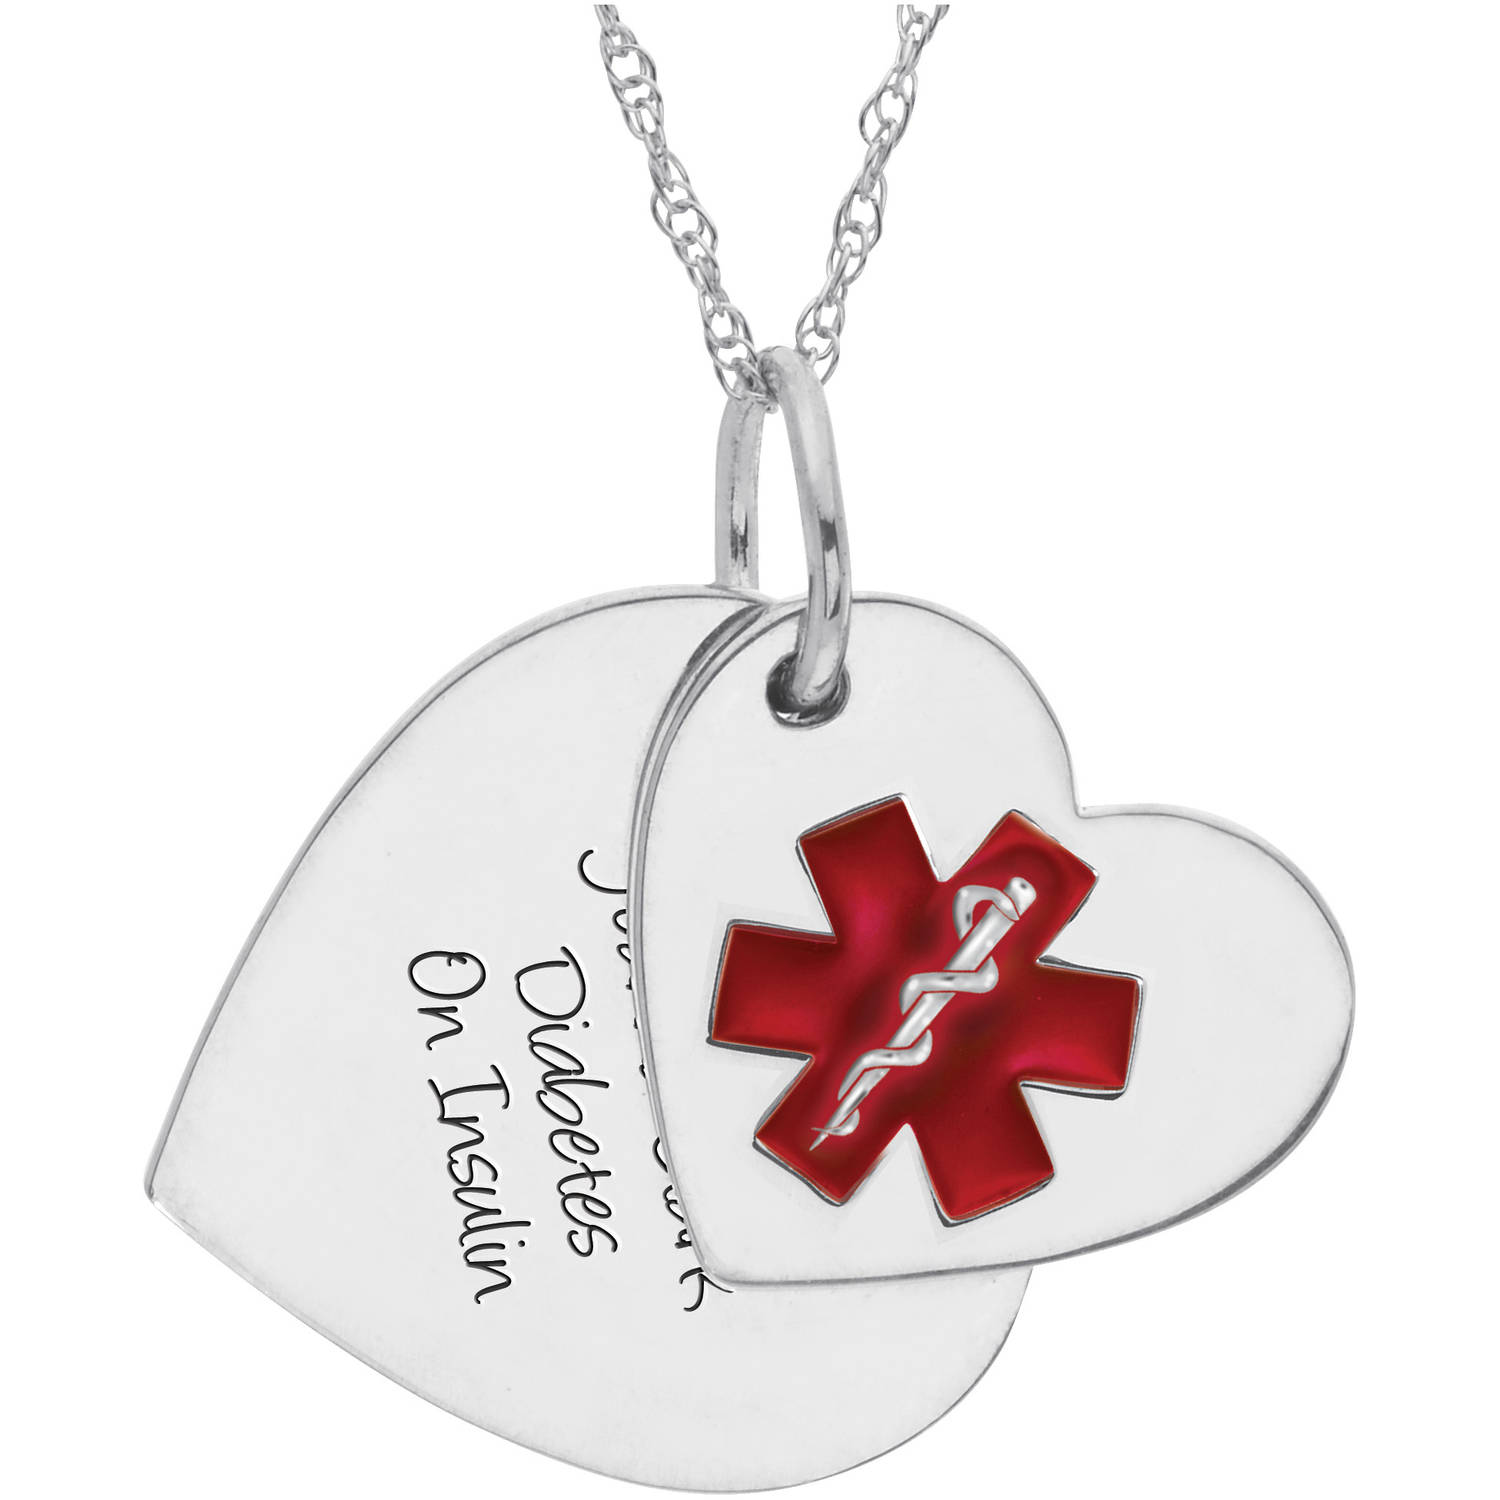 Personalized Keepsake Women's Medical ID Heart Pendant